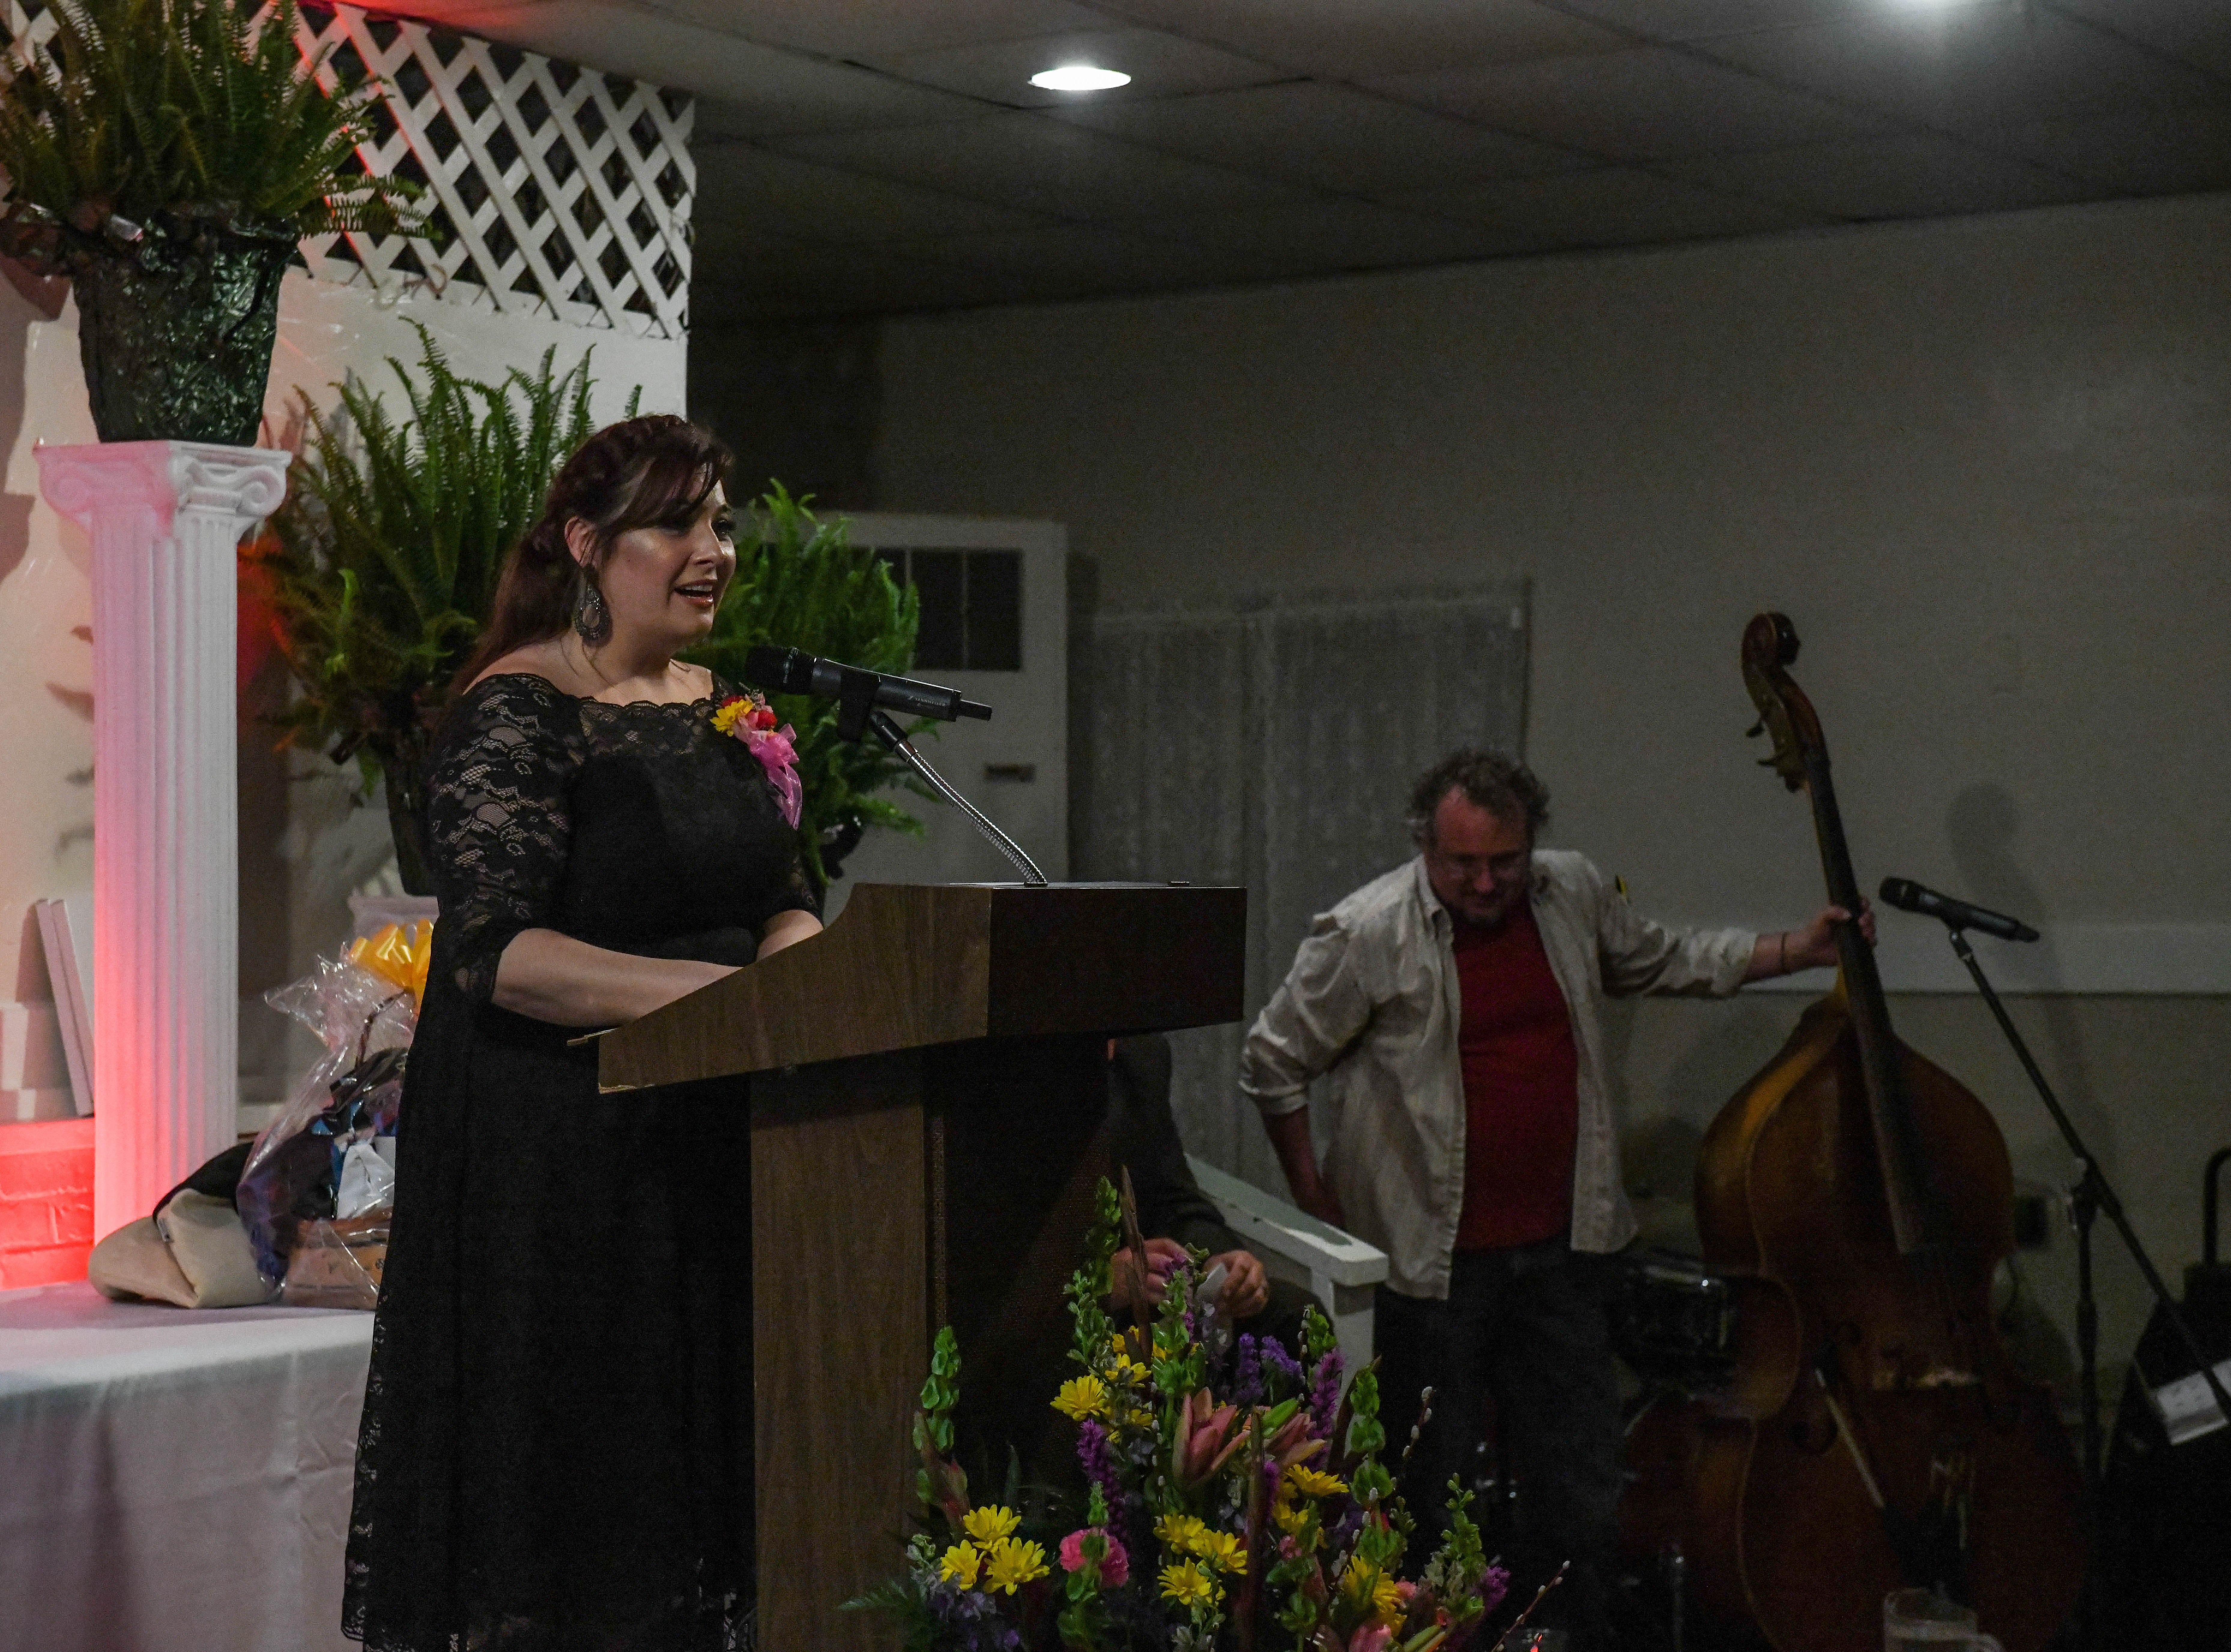 Christina South, Deal Island Elementary School teacher, speaks after receiving the Somerset County teacher of the year award at the banquet on Friday, April 5, 2019.